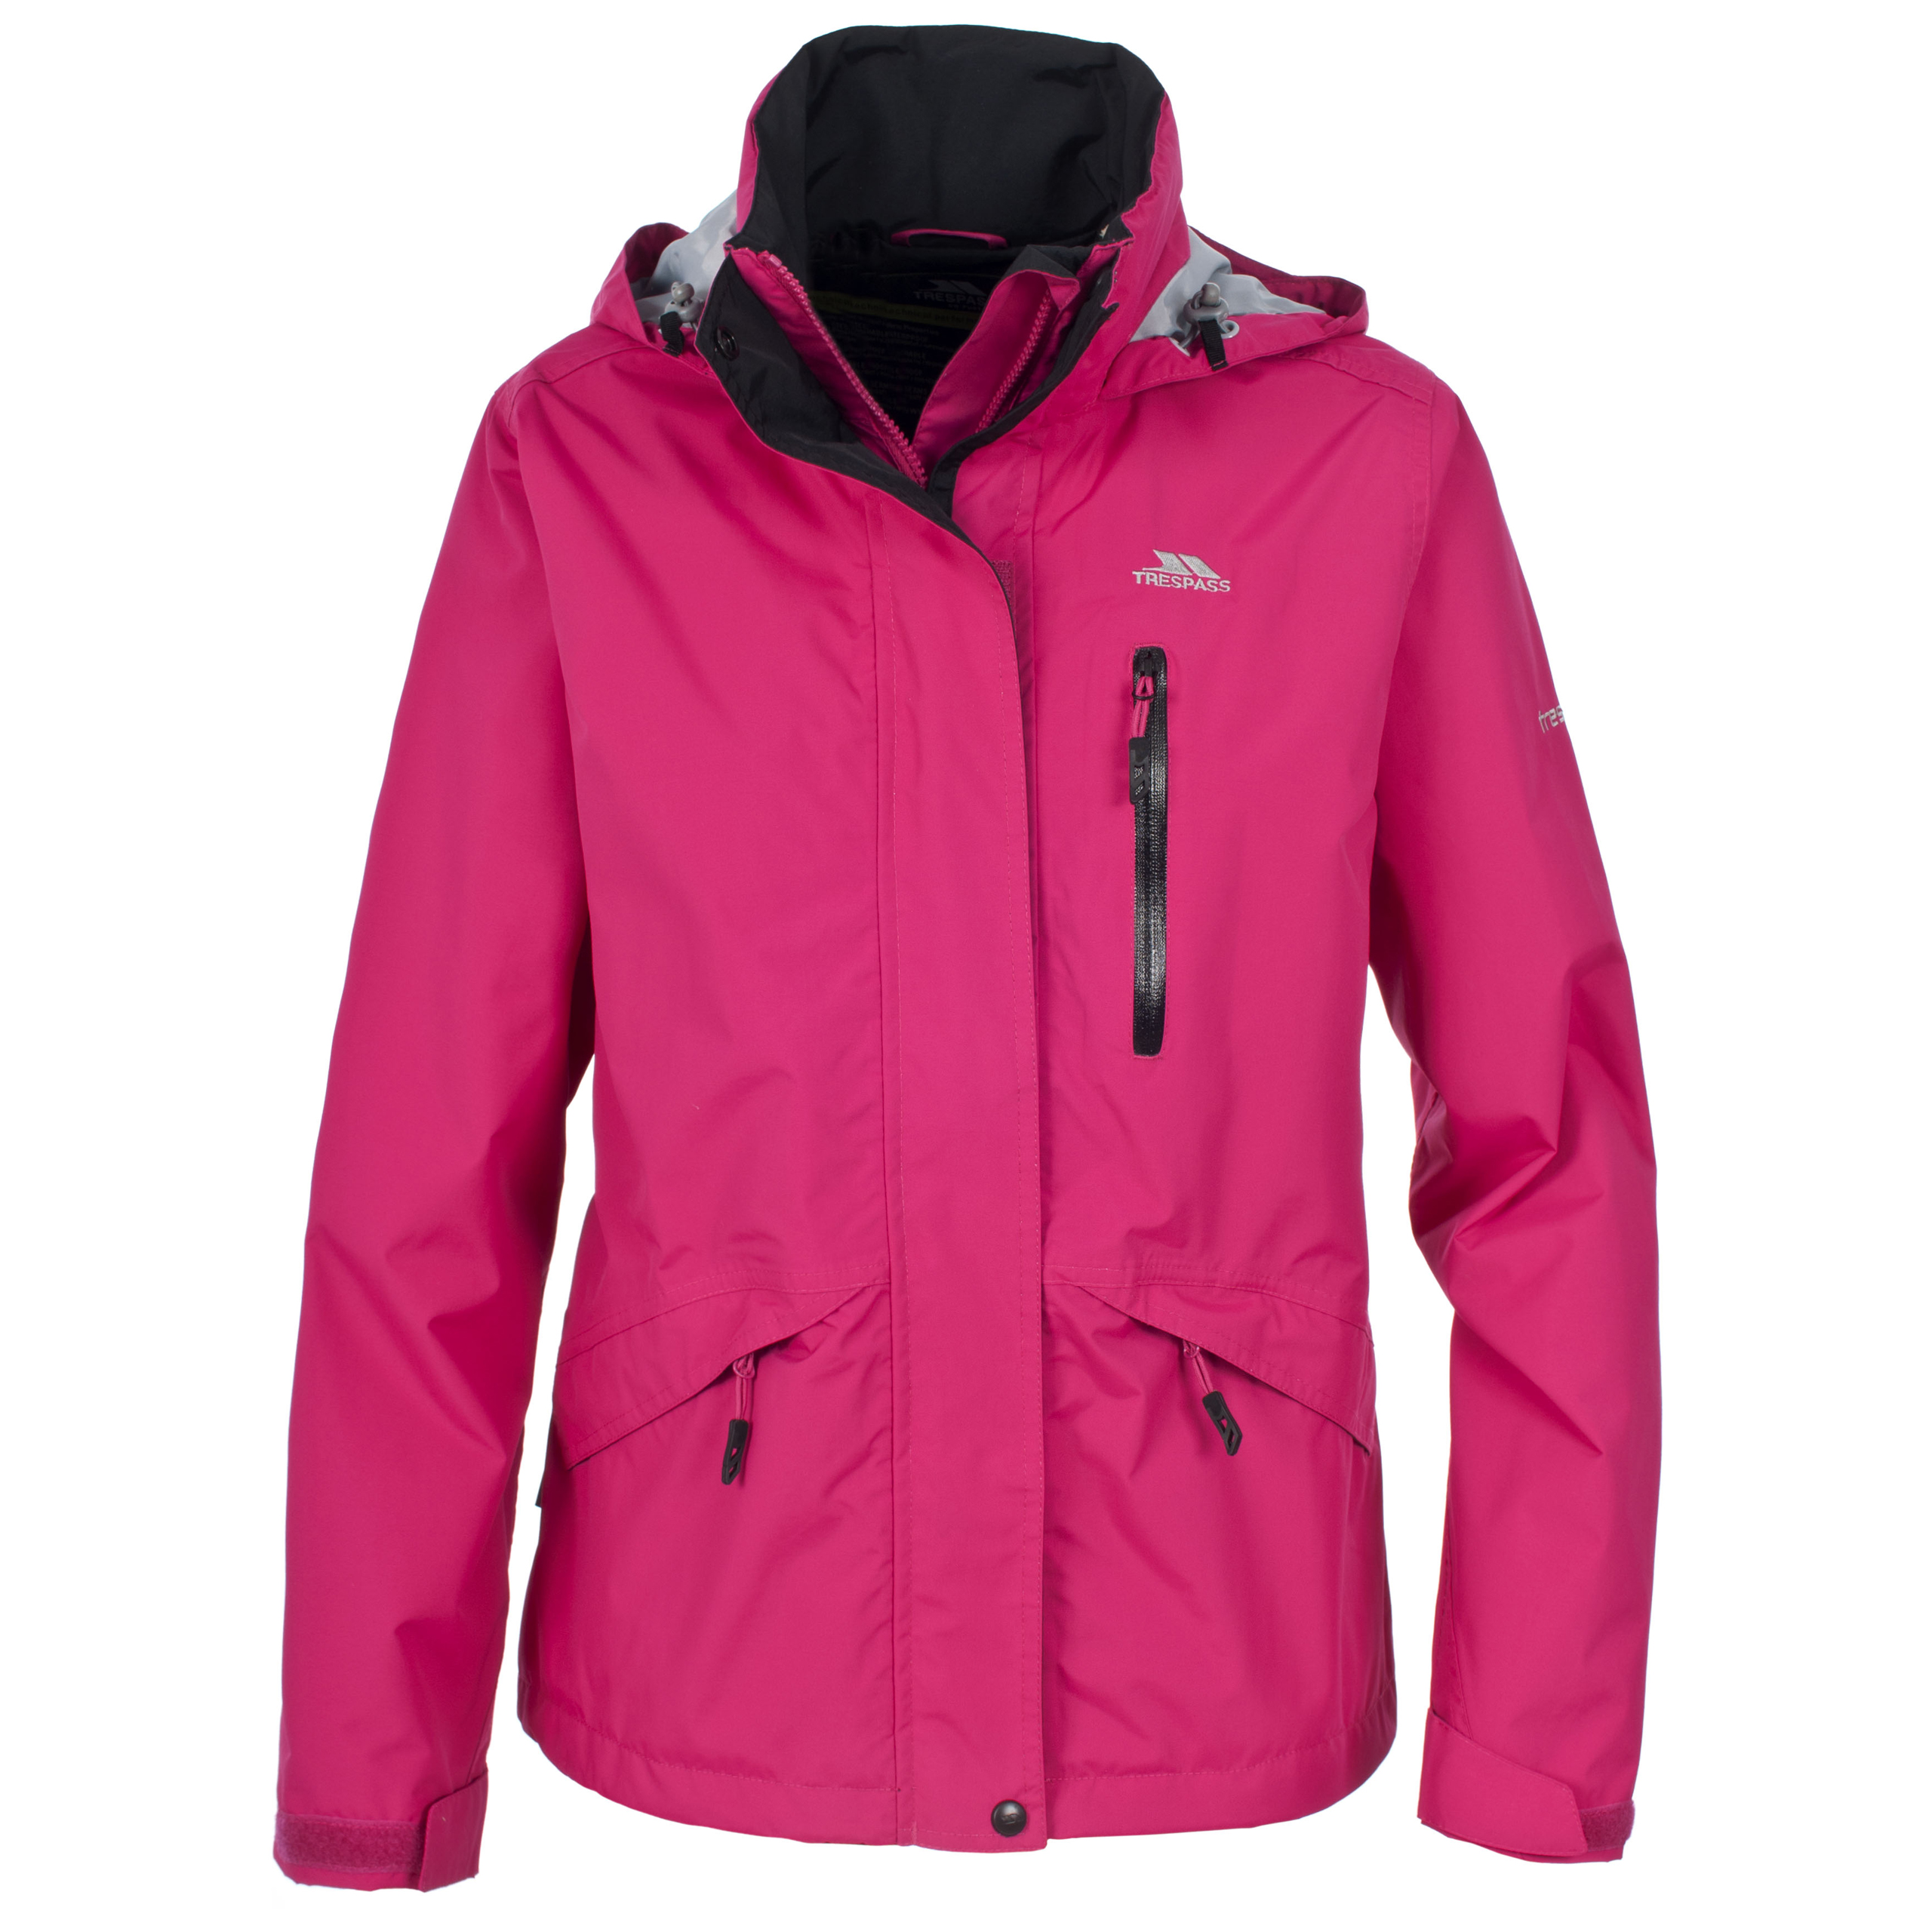 Another one of the more stylish rain jackets for women, this jacket from Columbia is the perfect blend of multifunctional and wearable. An inner drawcord waist allows for an adjustable fit while its omni-tech technology keeps the jacket waterproof and breathable.